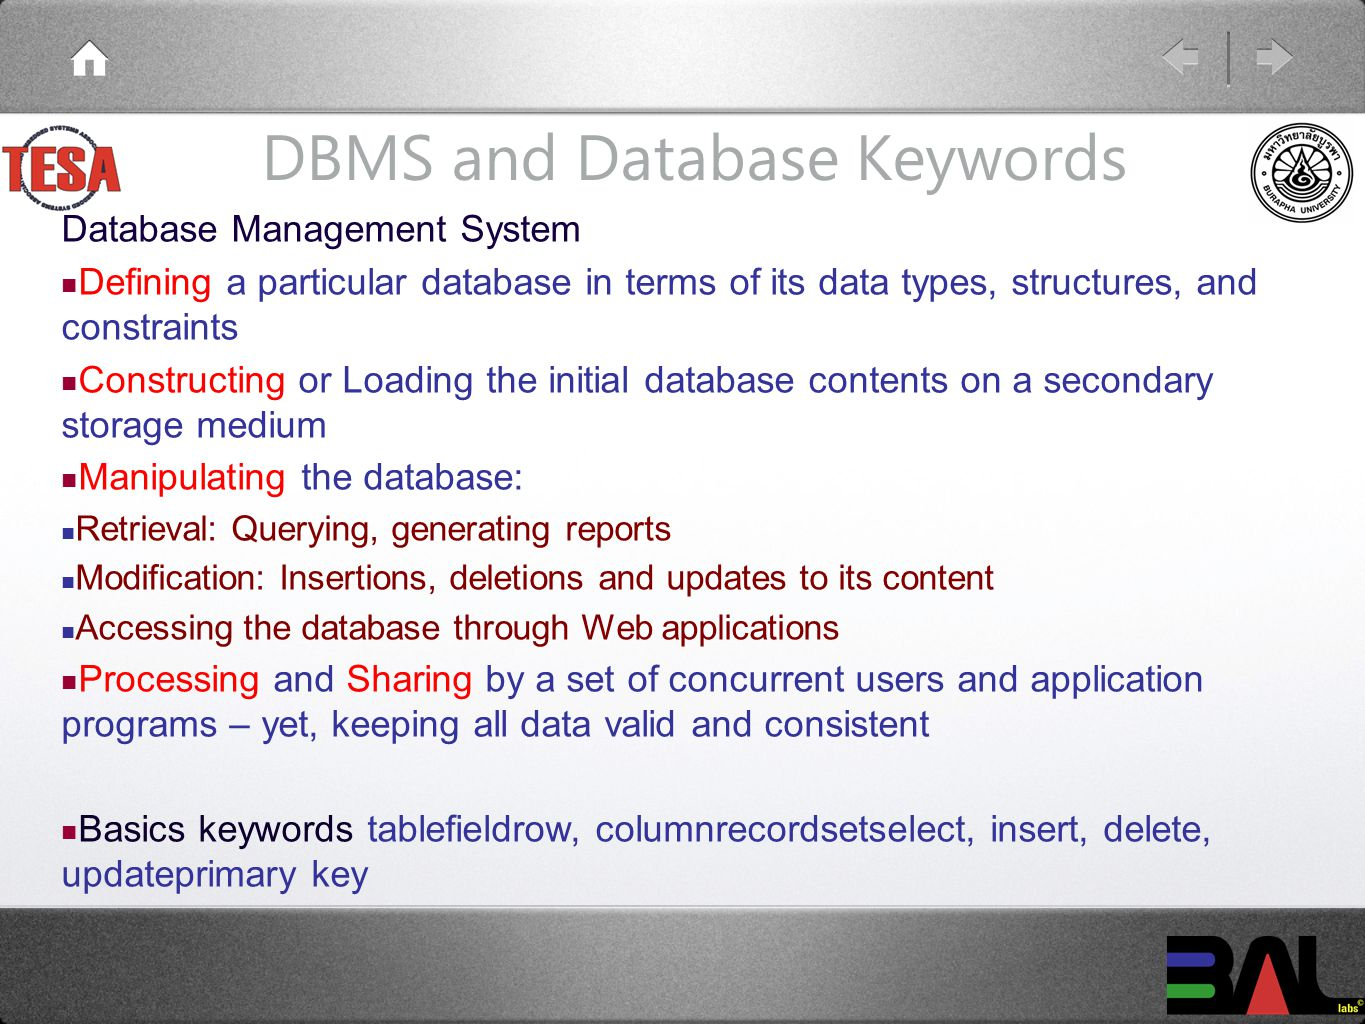 DBMS and Database Keywords Database Management System Defining a particular database in terms of its data types, structures, and constraints Constructing or Loading the initial database contents on a secondary storage medium Manipulating the database: Retrieval: Querying, generating reports Modification: Insertions, deletions and updates to its content Accessing the database through Web applications Processing and Sharing by a set of concurrent users and application programs – yet, keeping all data valid and consistent Basics keywords tablefieldrow, columnrecordsetselect, insert, delete, updateprimary key